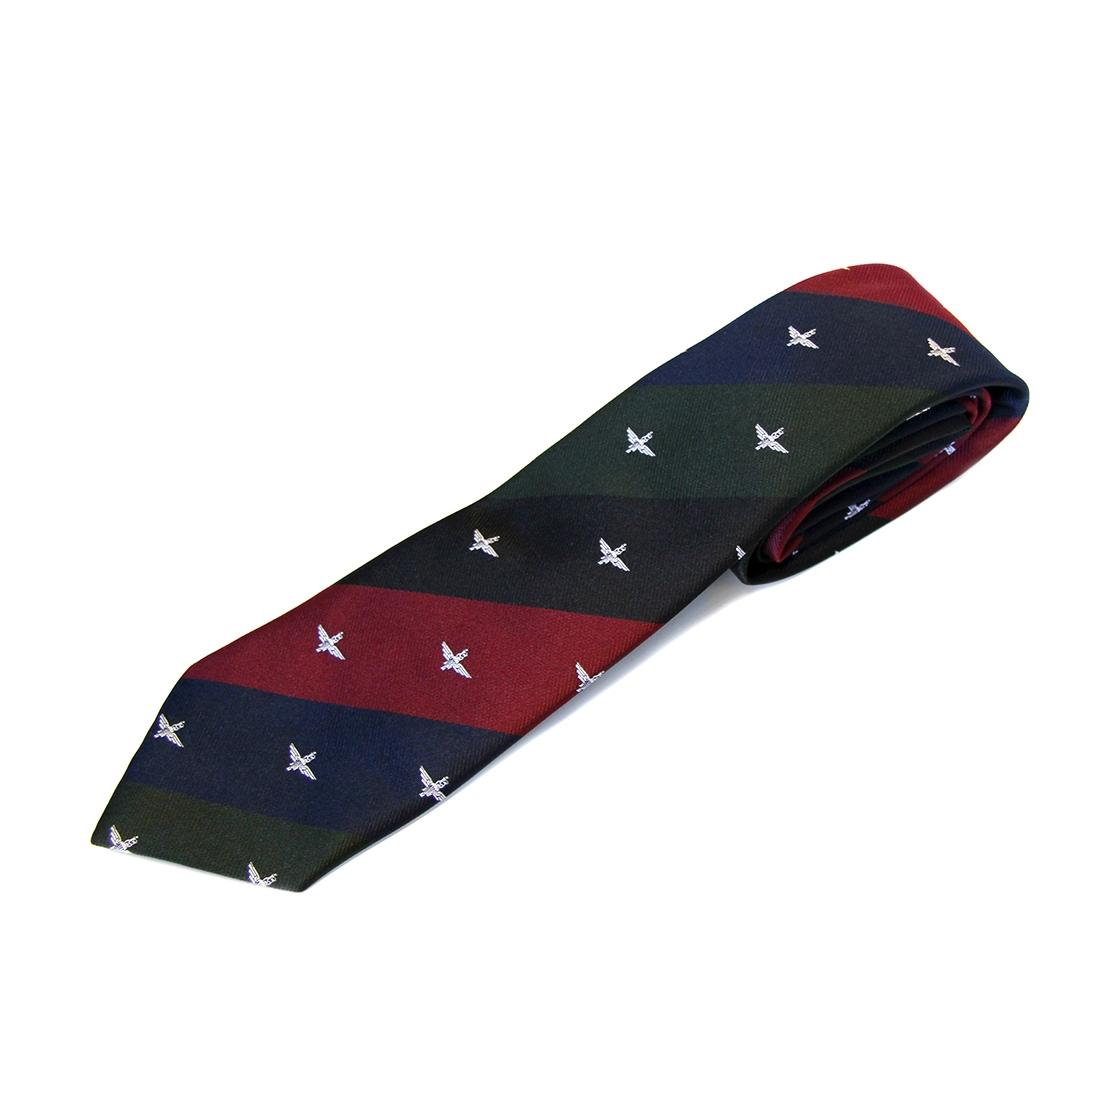 Tie, Para on Maroon, Blue, Green and Black (4 Colour) Stripes (Polyester)